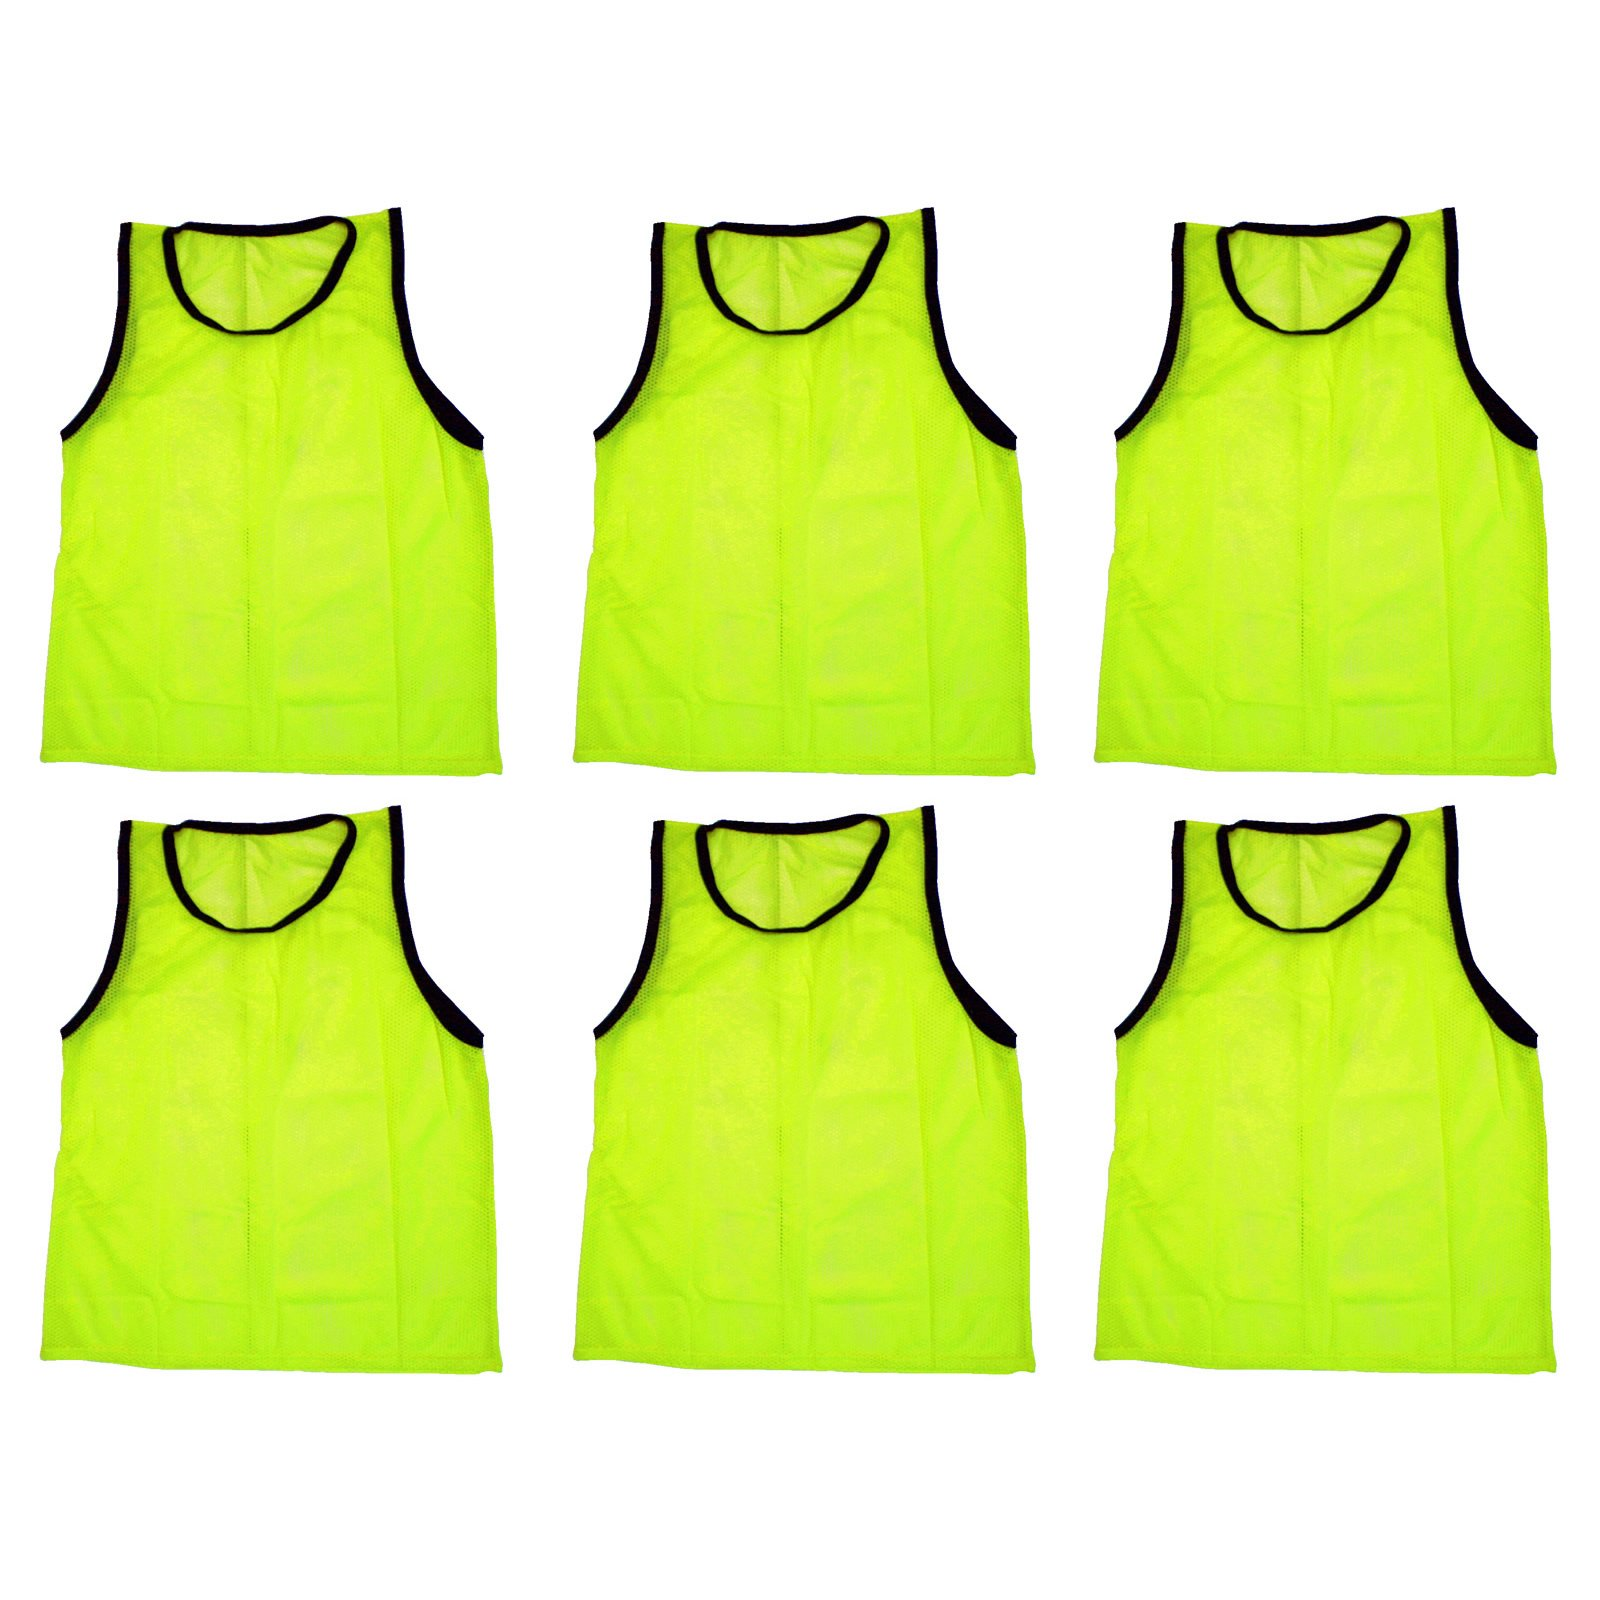 BlueDot Trading 6 yellow adult sports pinnies-6 scrimmage training vests by Bluedot Trading